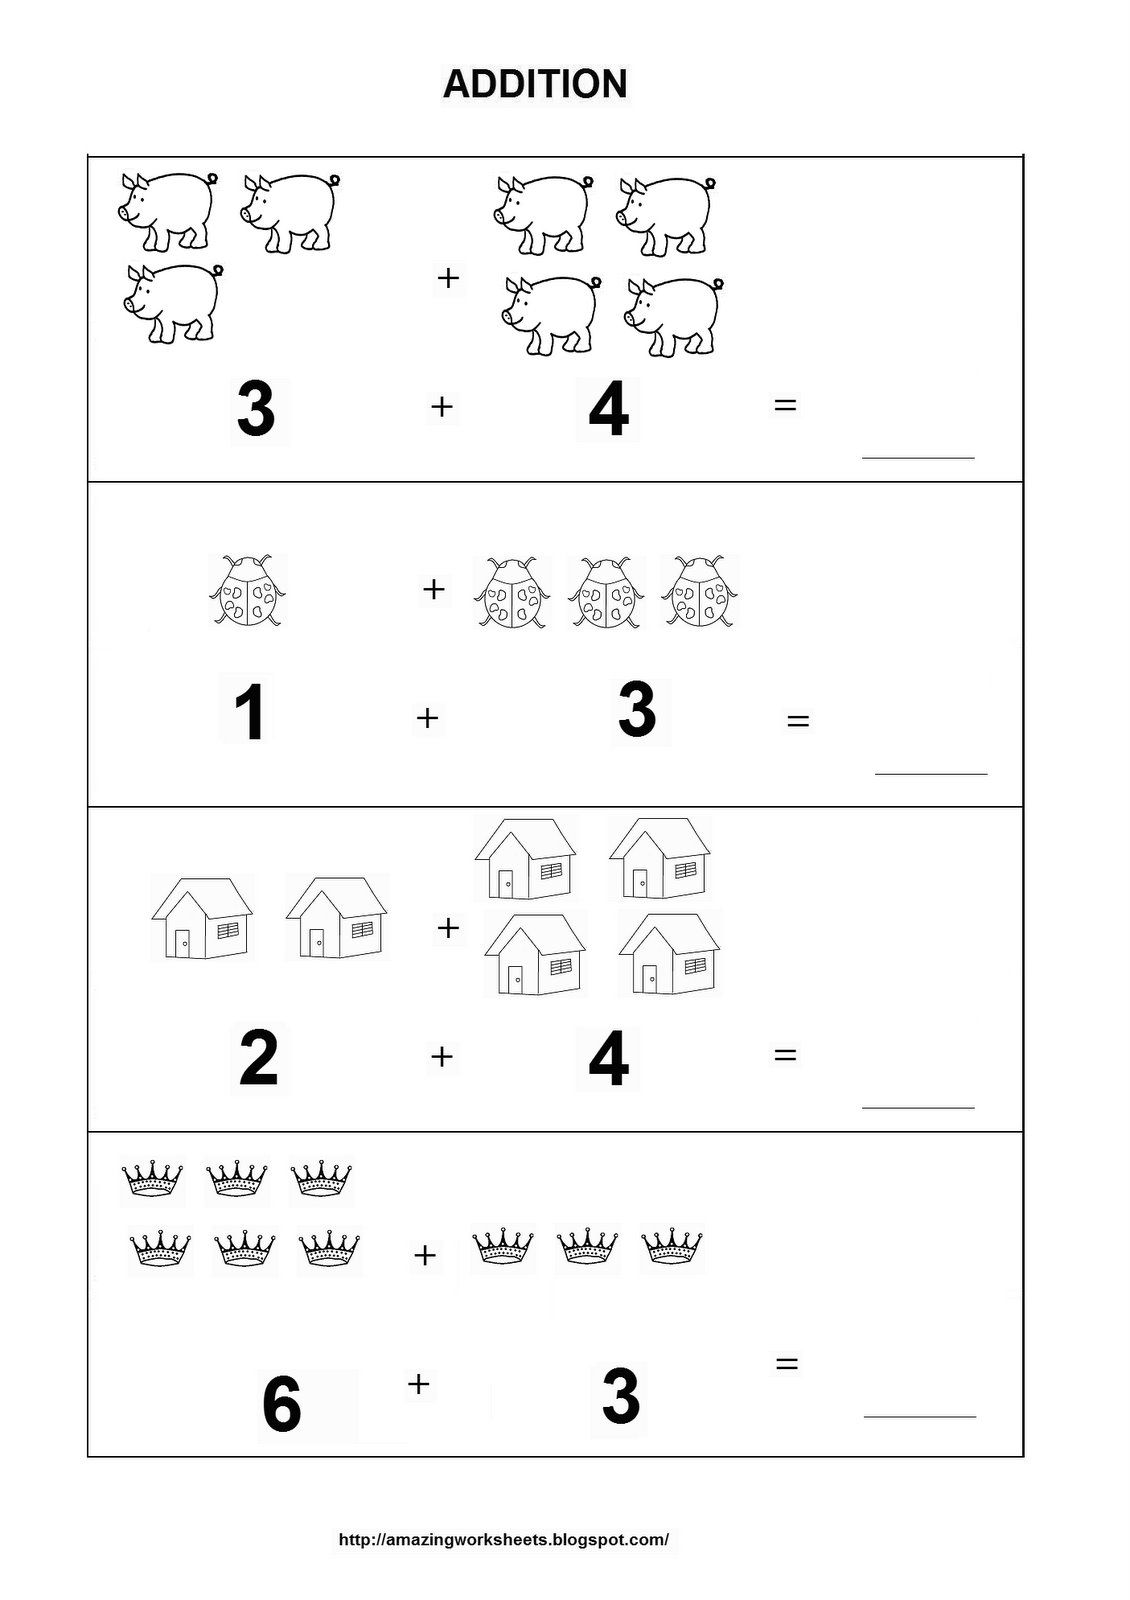 Worksheet Addition Sheets For Kindergarten free printable kindergarten addition worksheets brandonbrice us and on pinterest pinterest